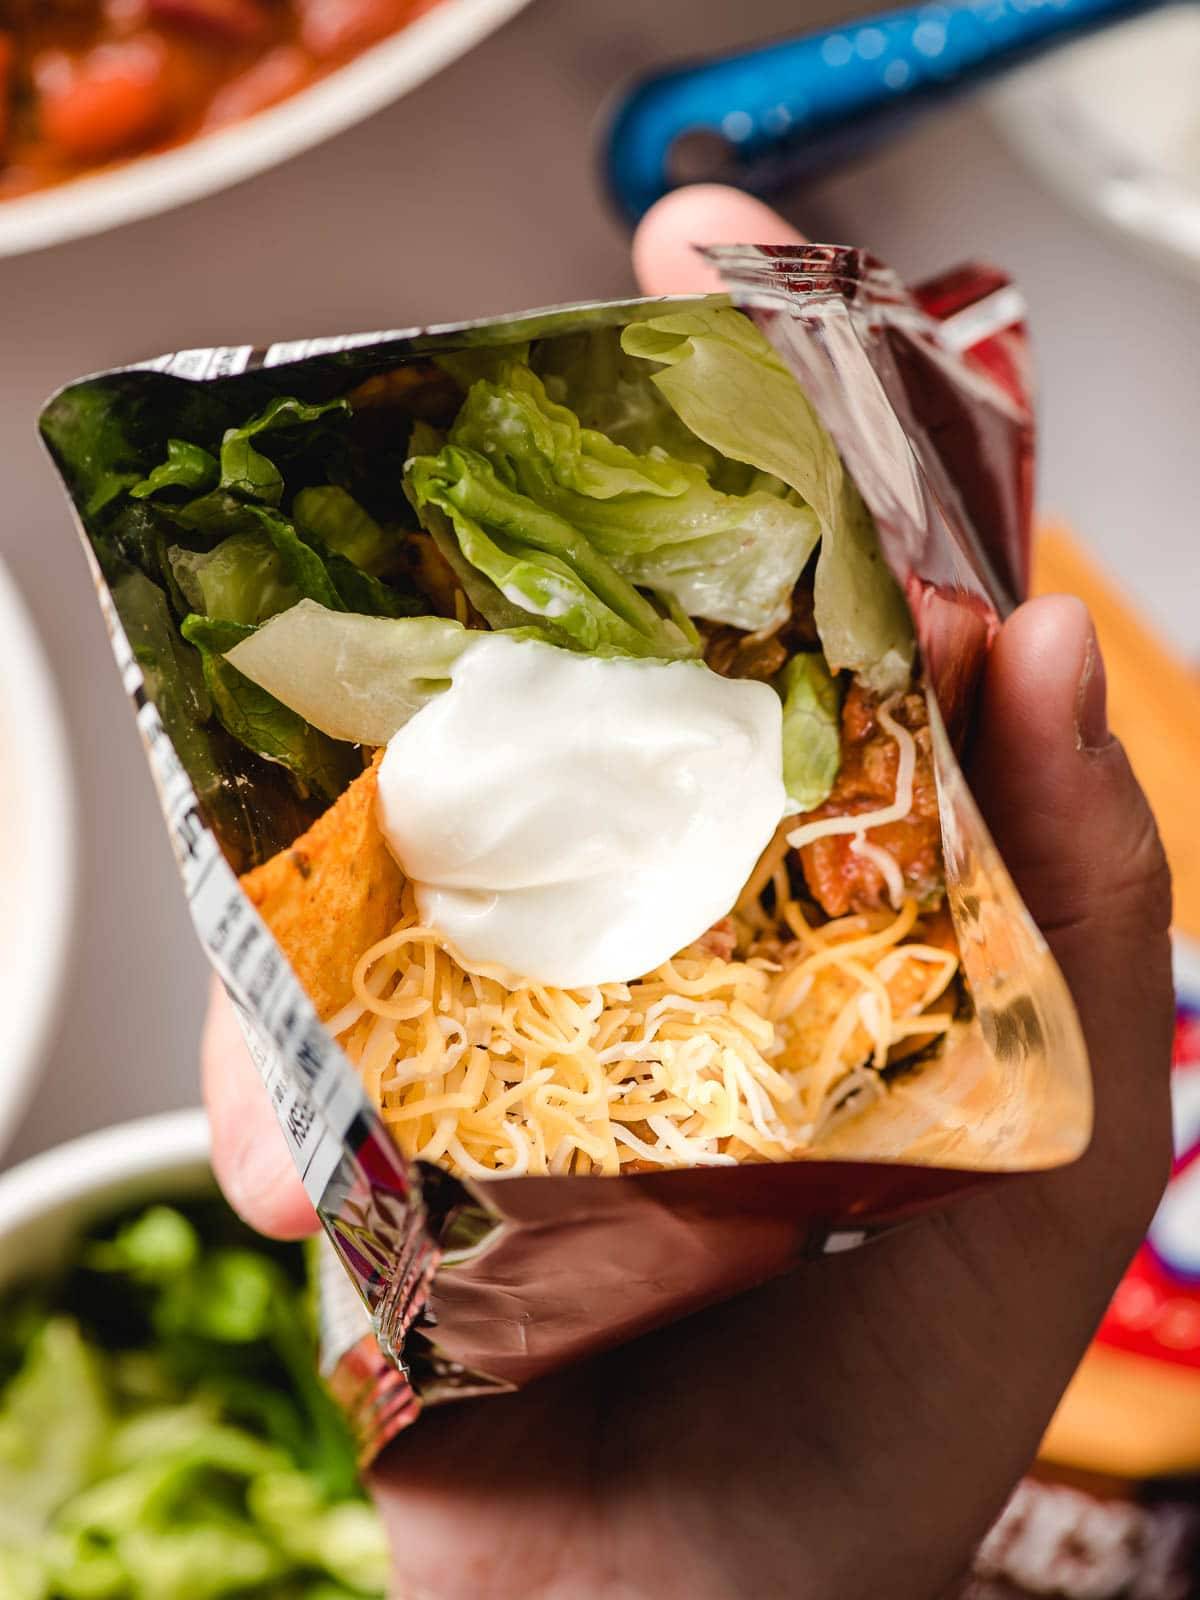 Open bag of chips layered with taco meat, lettuce, sour cream, and cheese.